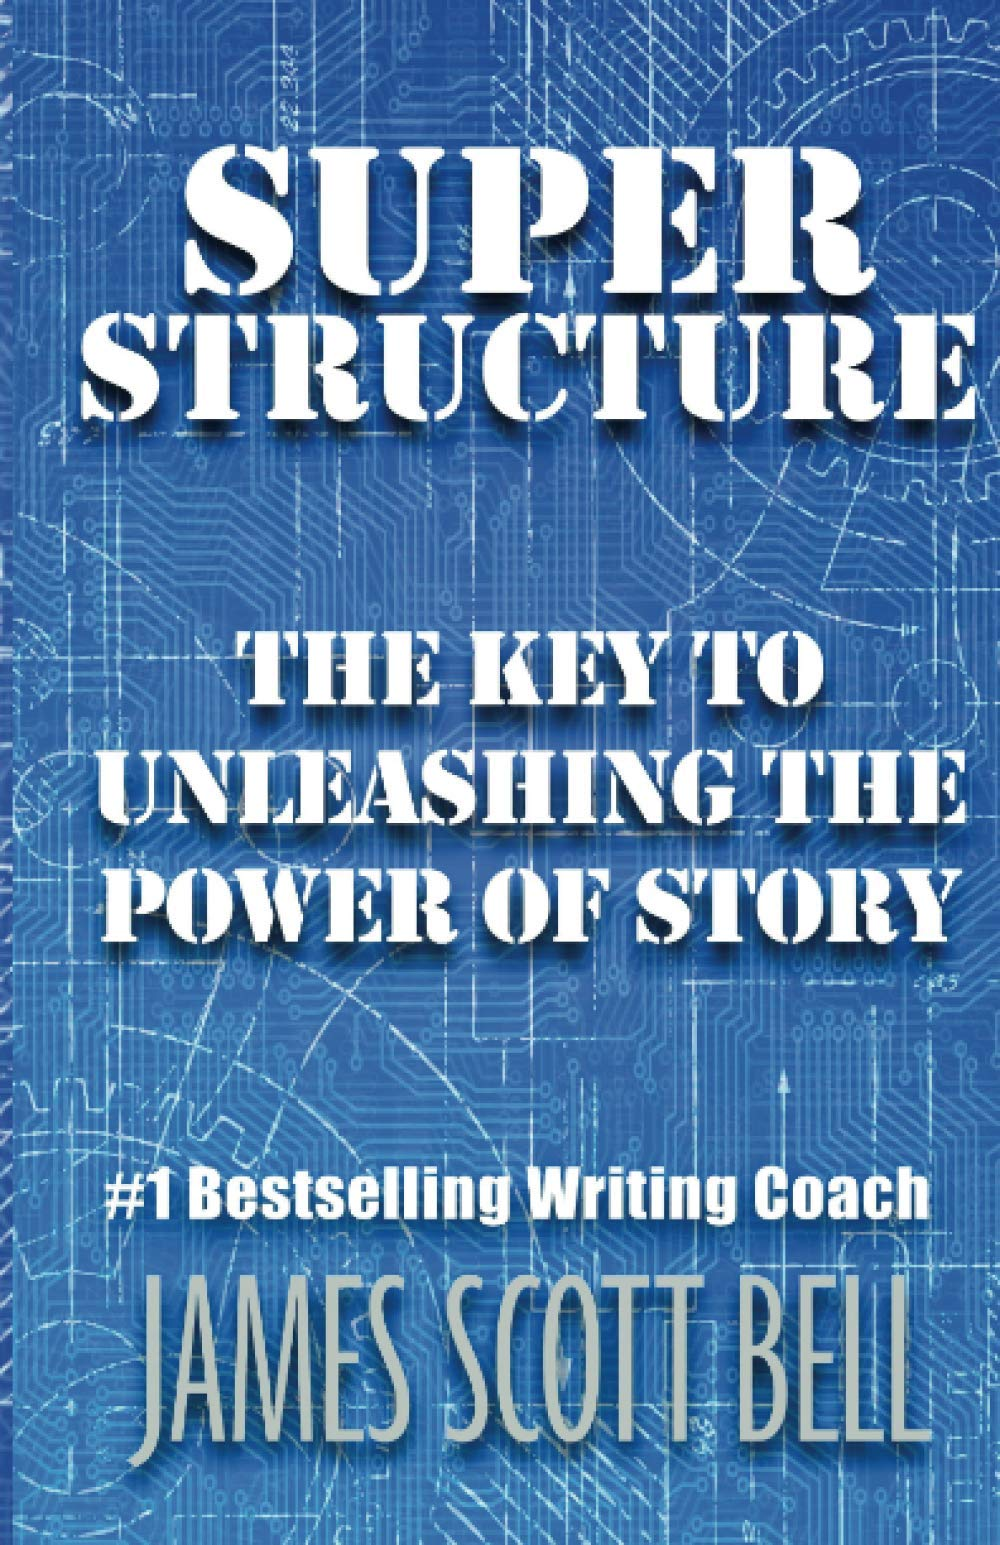 Super Structure: The Key to Unleashing the Power of Story (Bell on Writing)